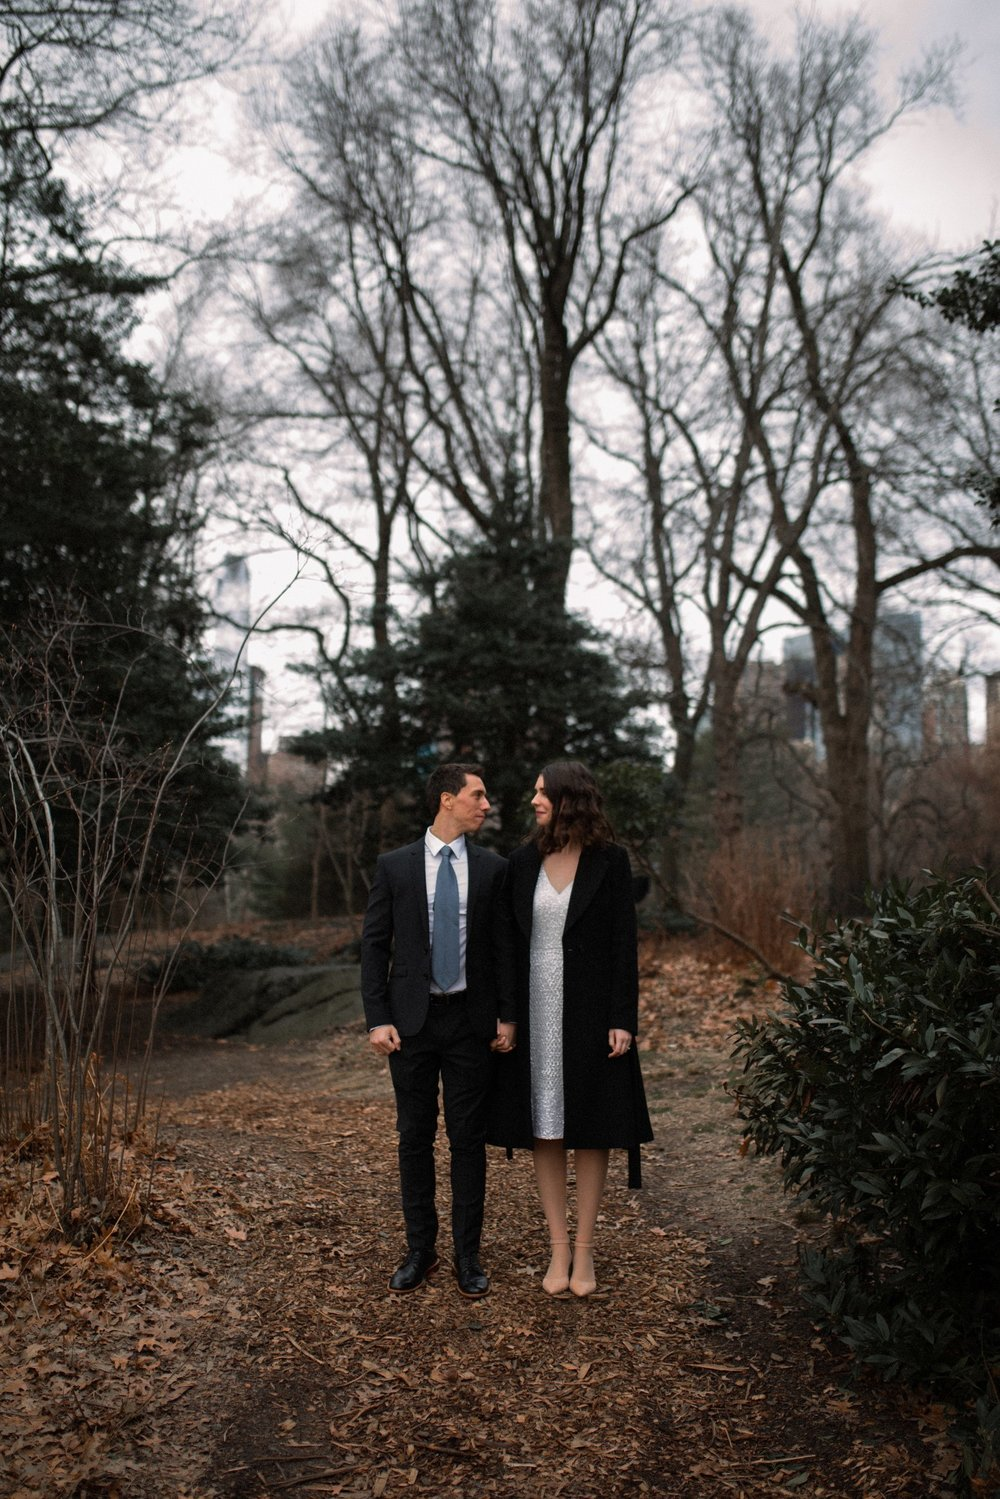 jose-melgarejo-engagement-nyc-central-park-winter-129.jpg